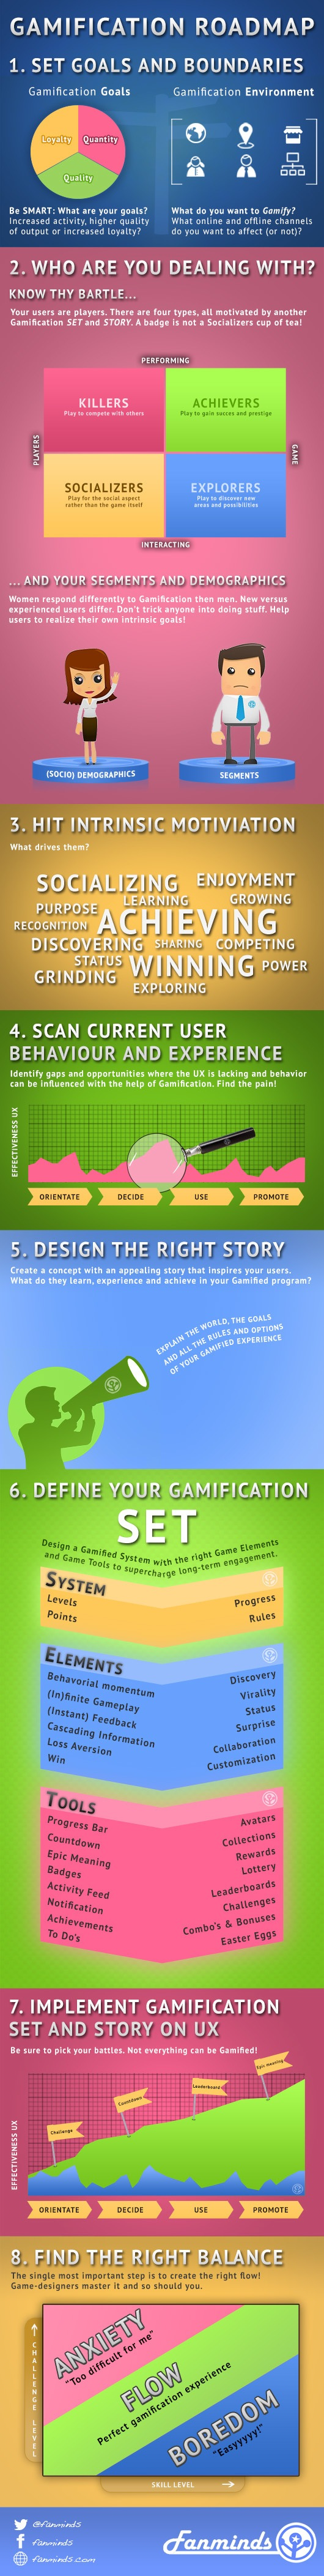 The Gamification Roadmap Infographic